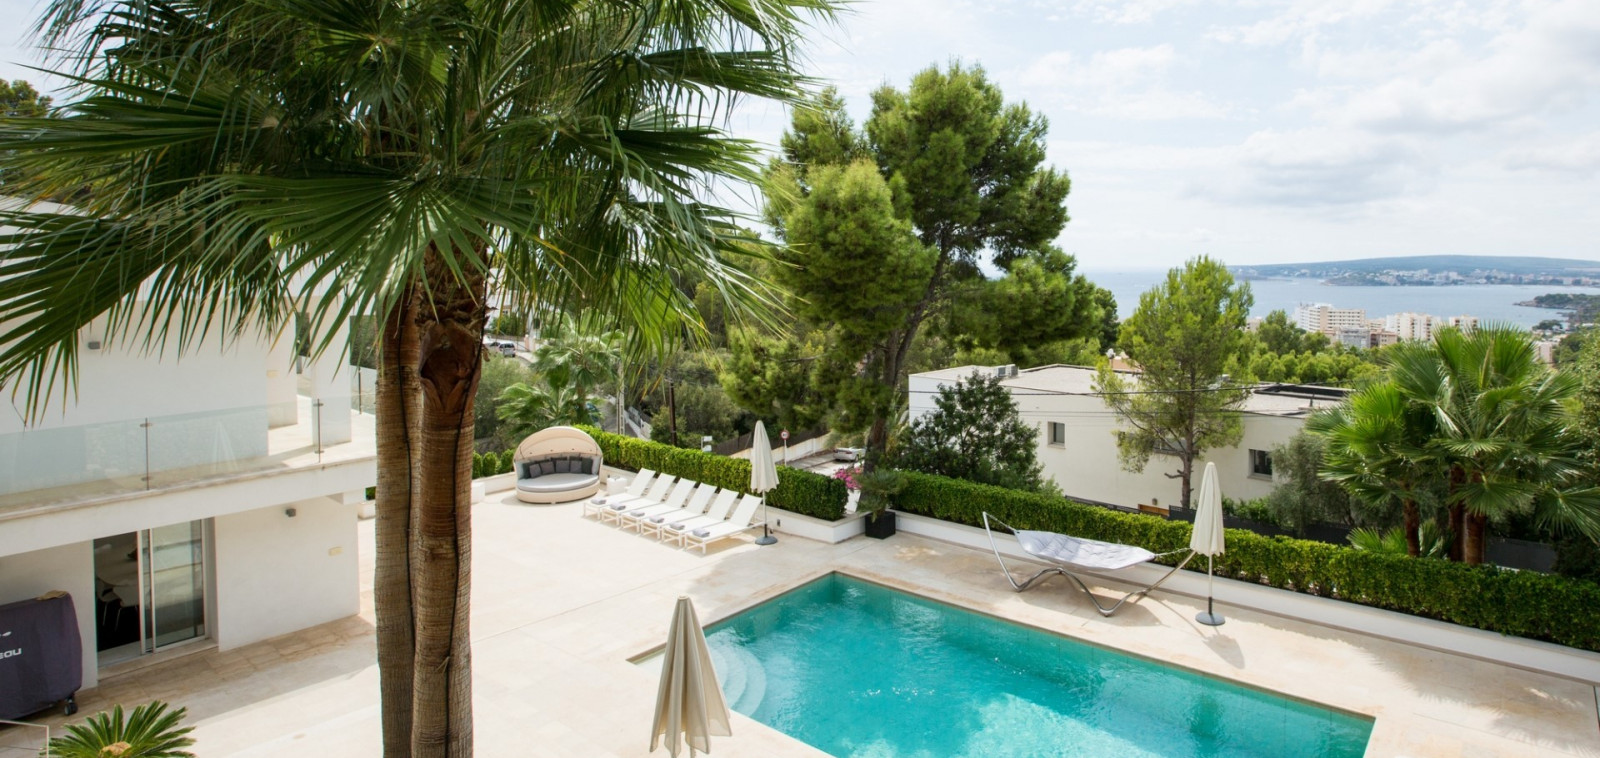 7 Bedroom Villa Mallorca